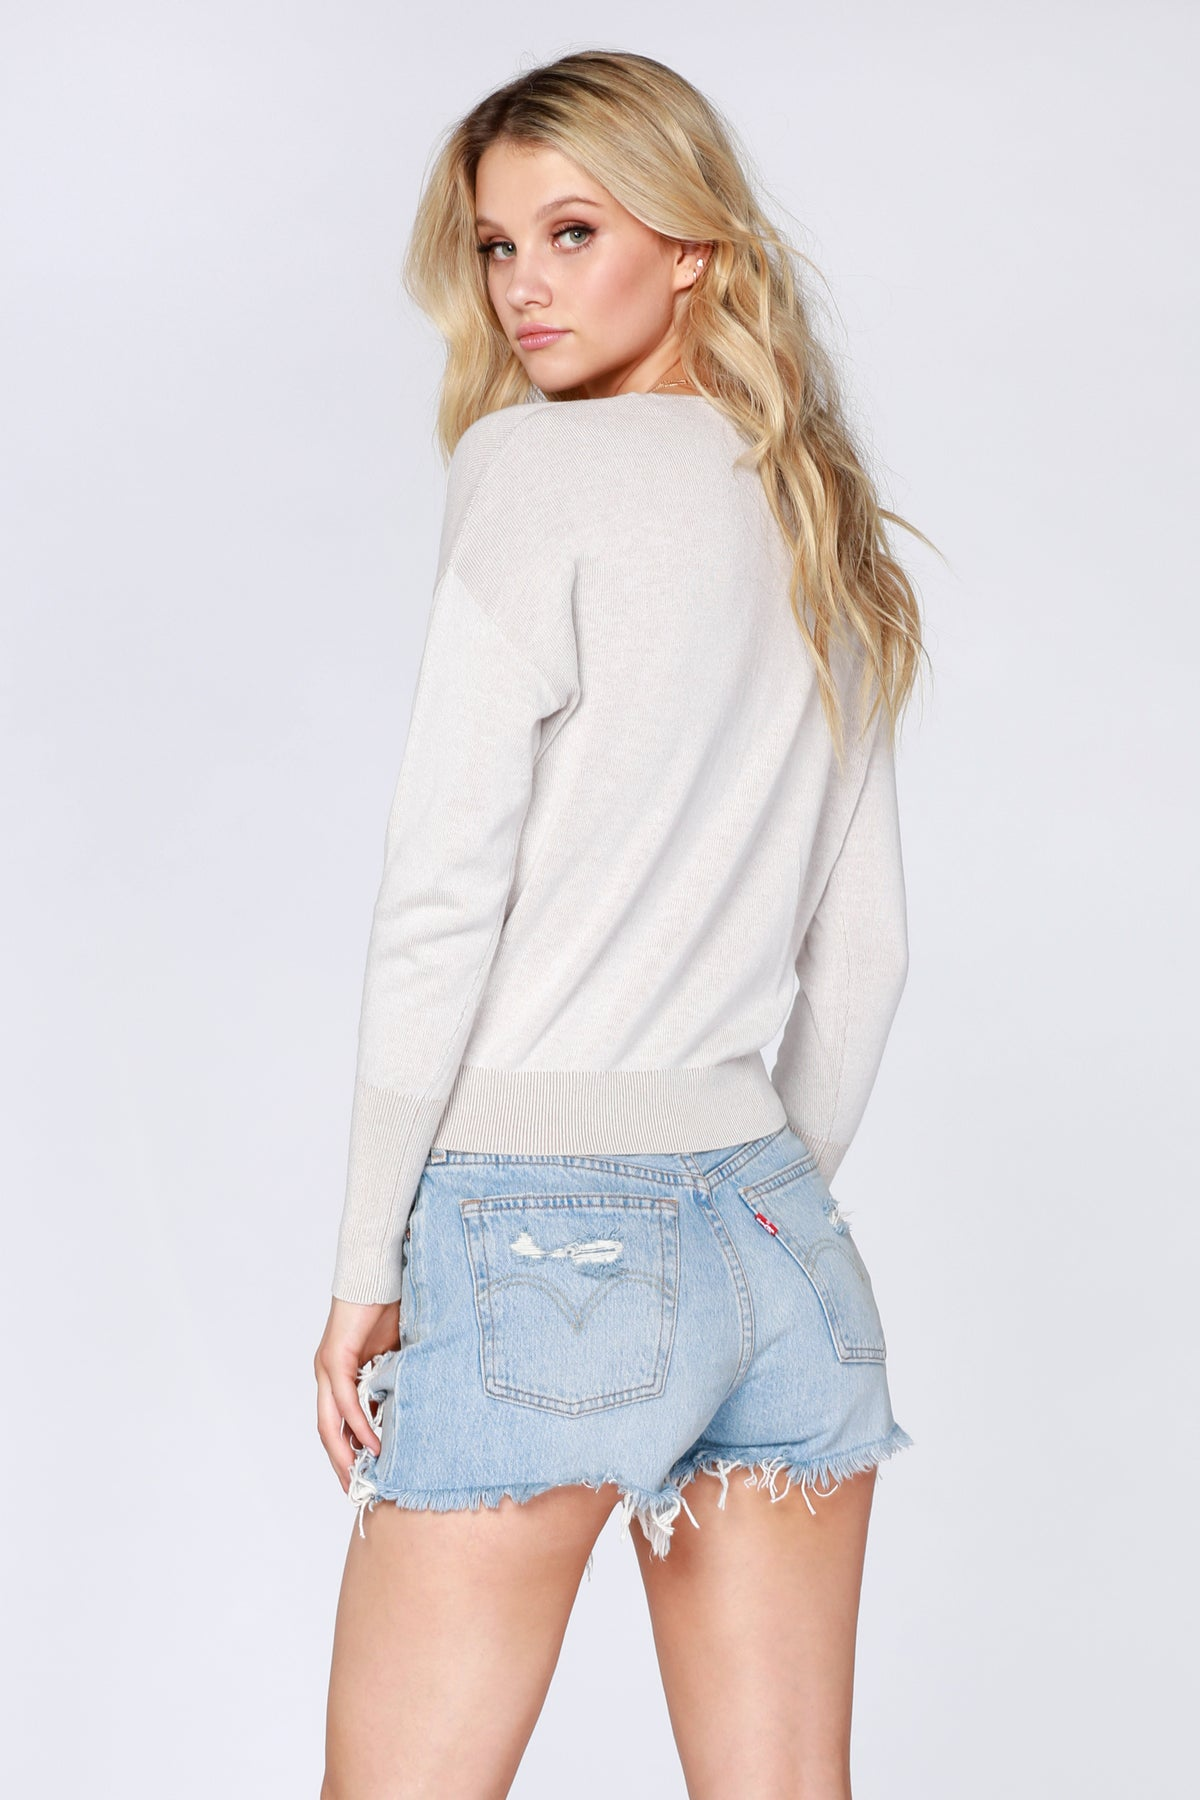 Plaited Cropped Surplice Sweater - bobi Los Angeles